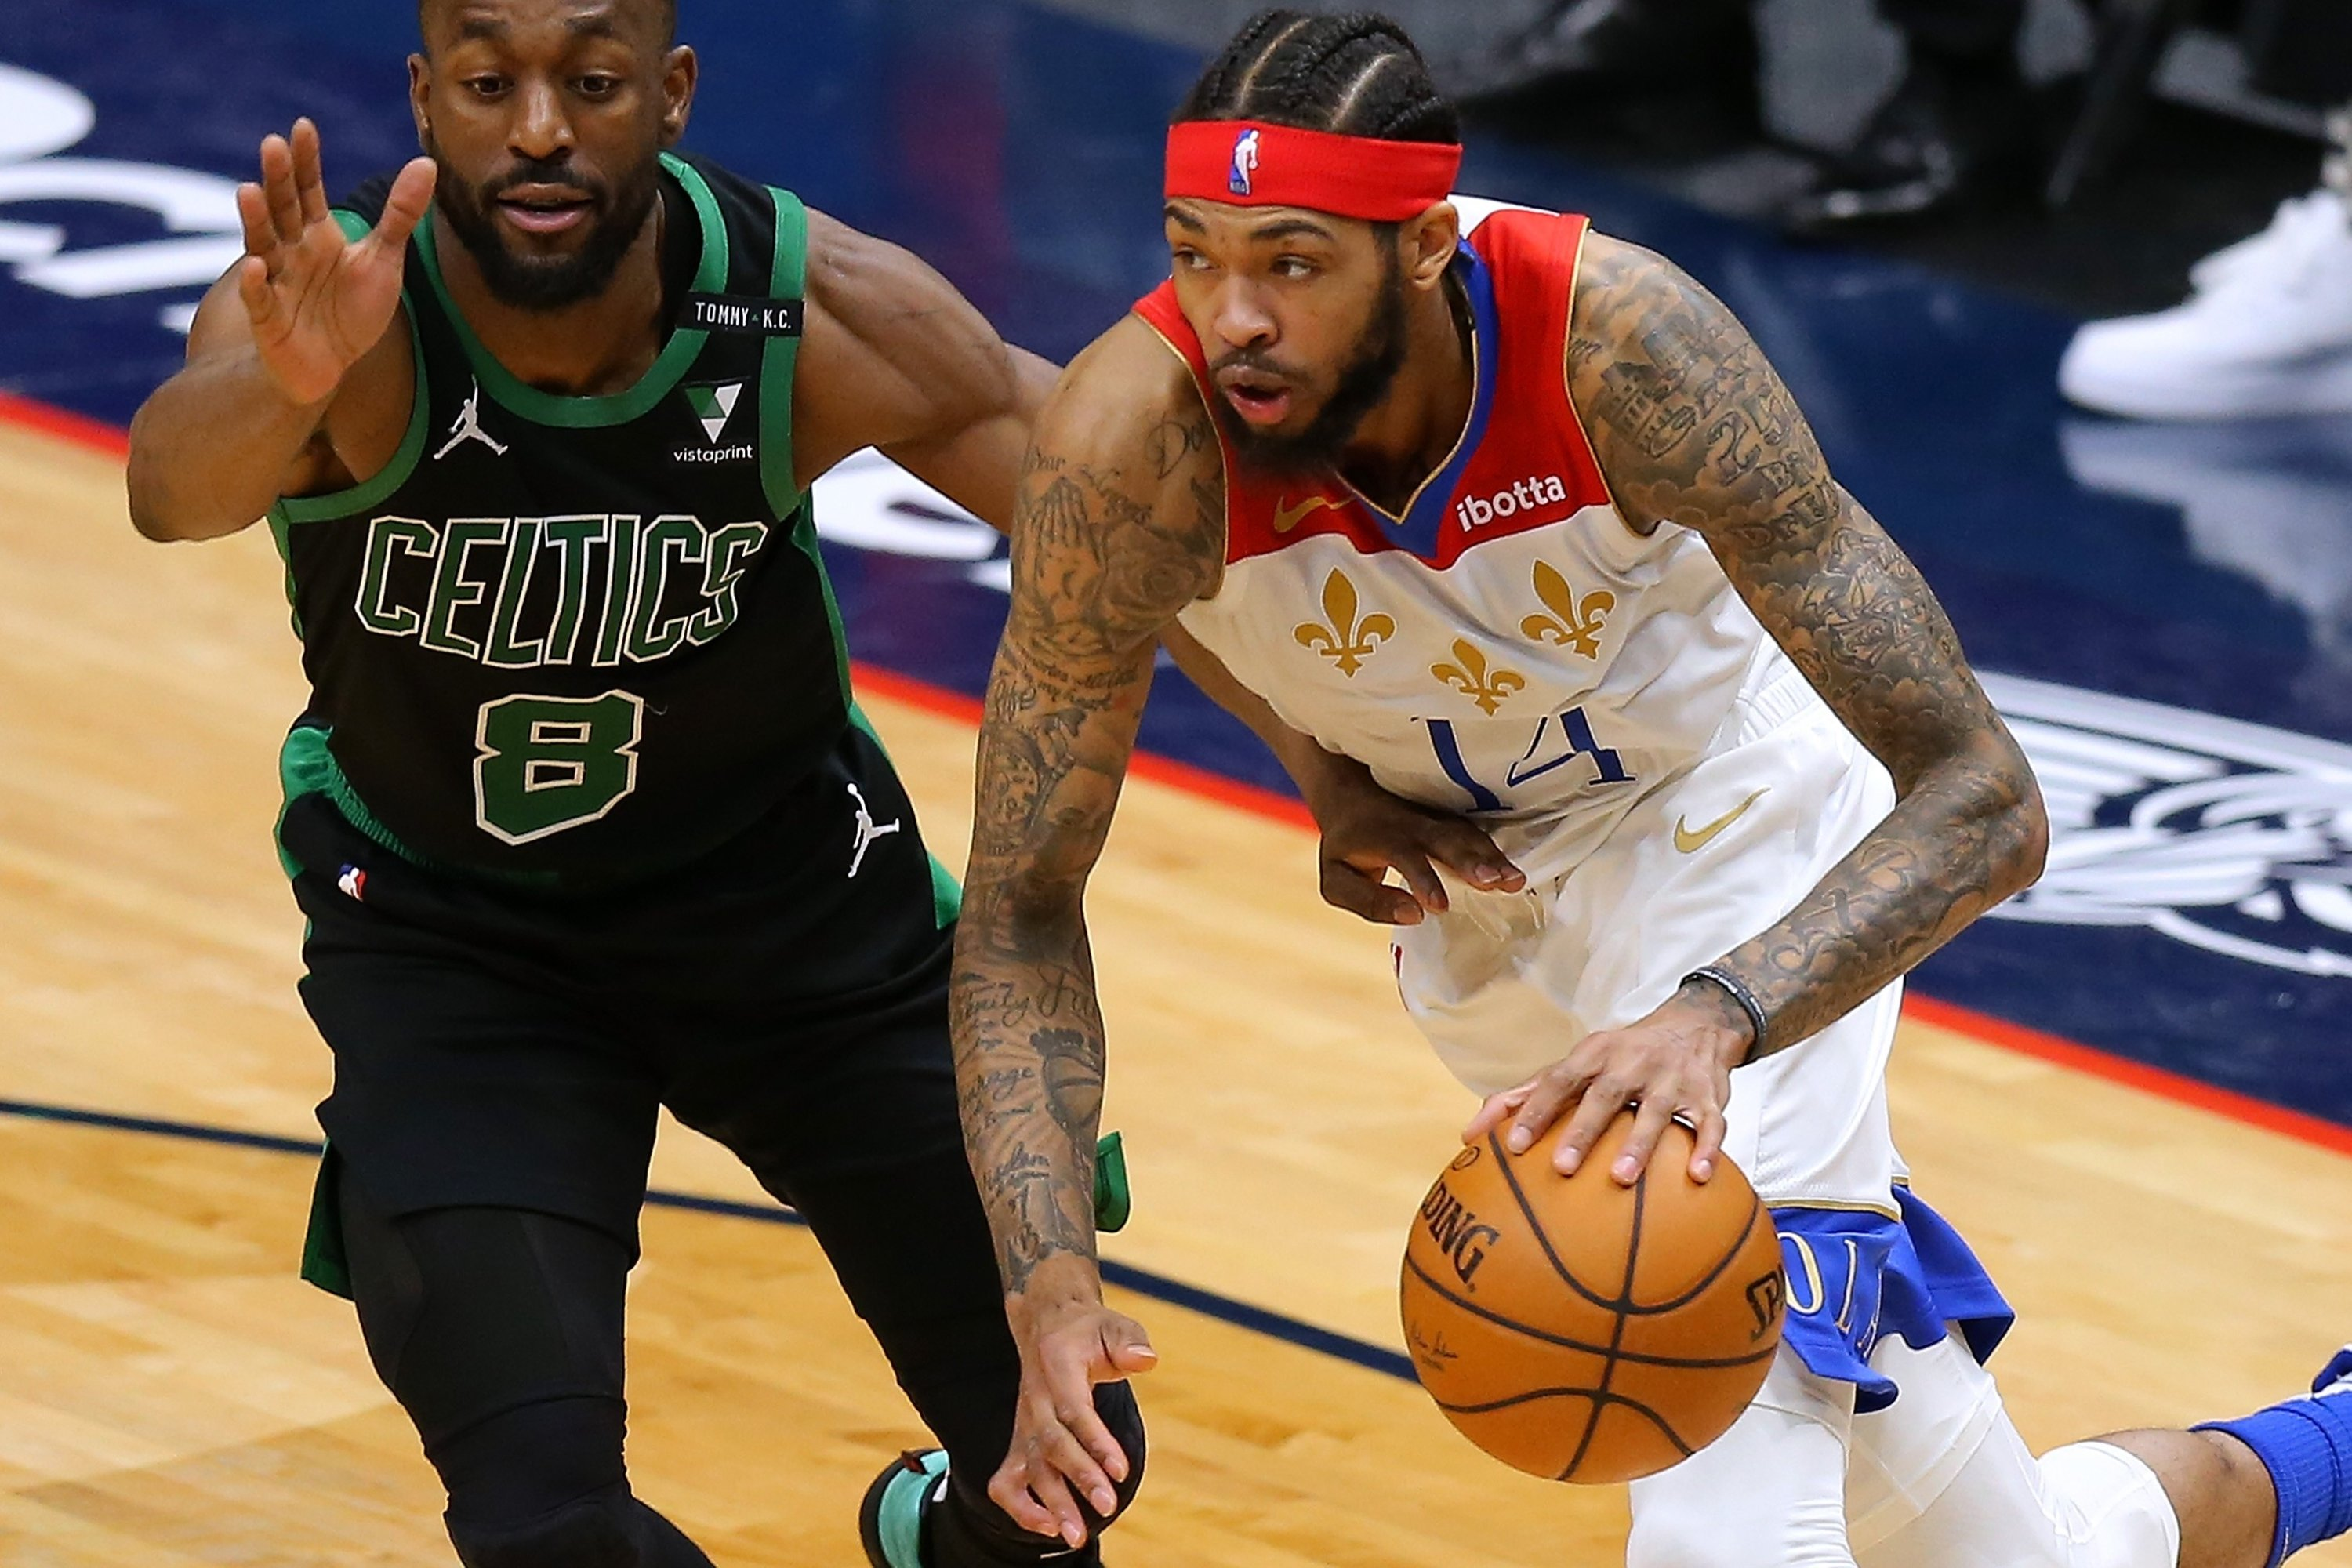 New Orleans Pelicans' Brandon Ingram (R) drives against Boston Celtics' Kemba Walker (L) during an NBA match at at the Smoothie King Center, New Orleans, Louisiana,Feb. 21, 2021. (AFP Photo)